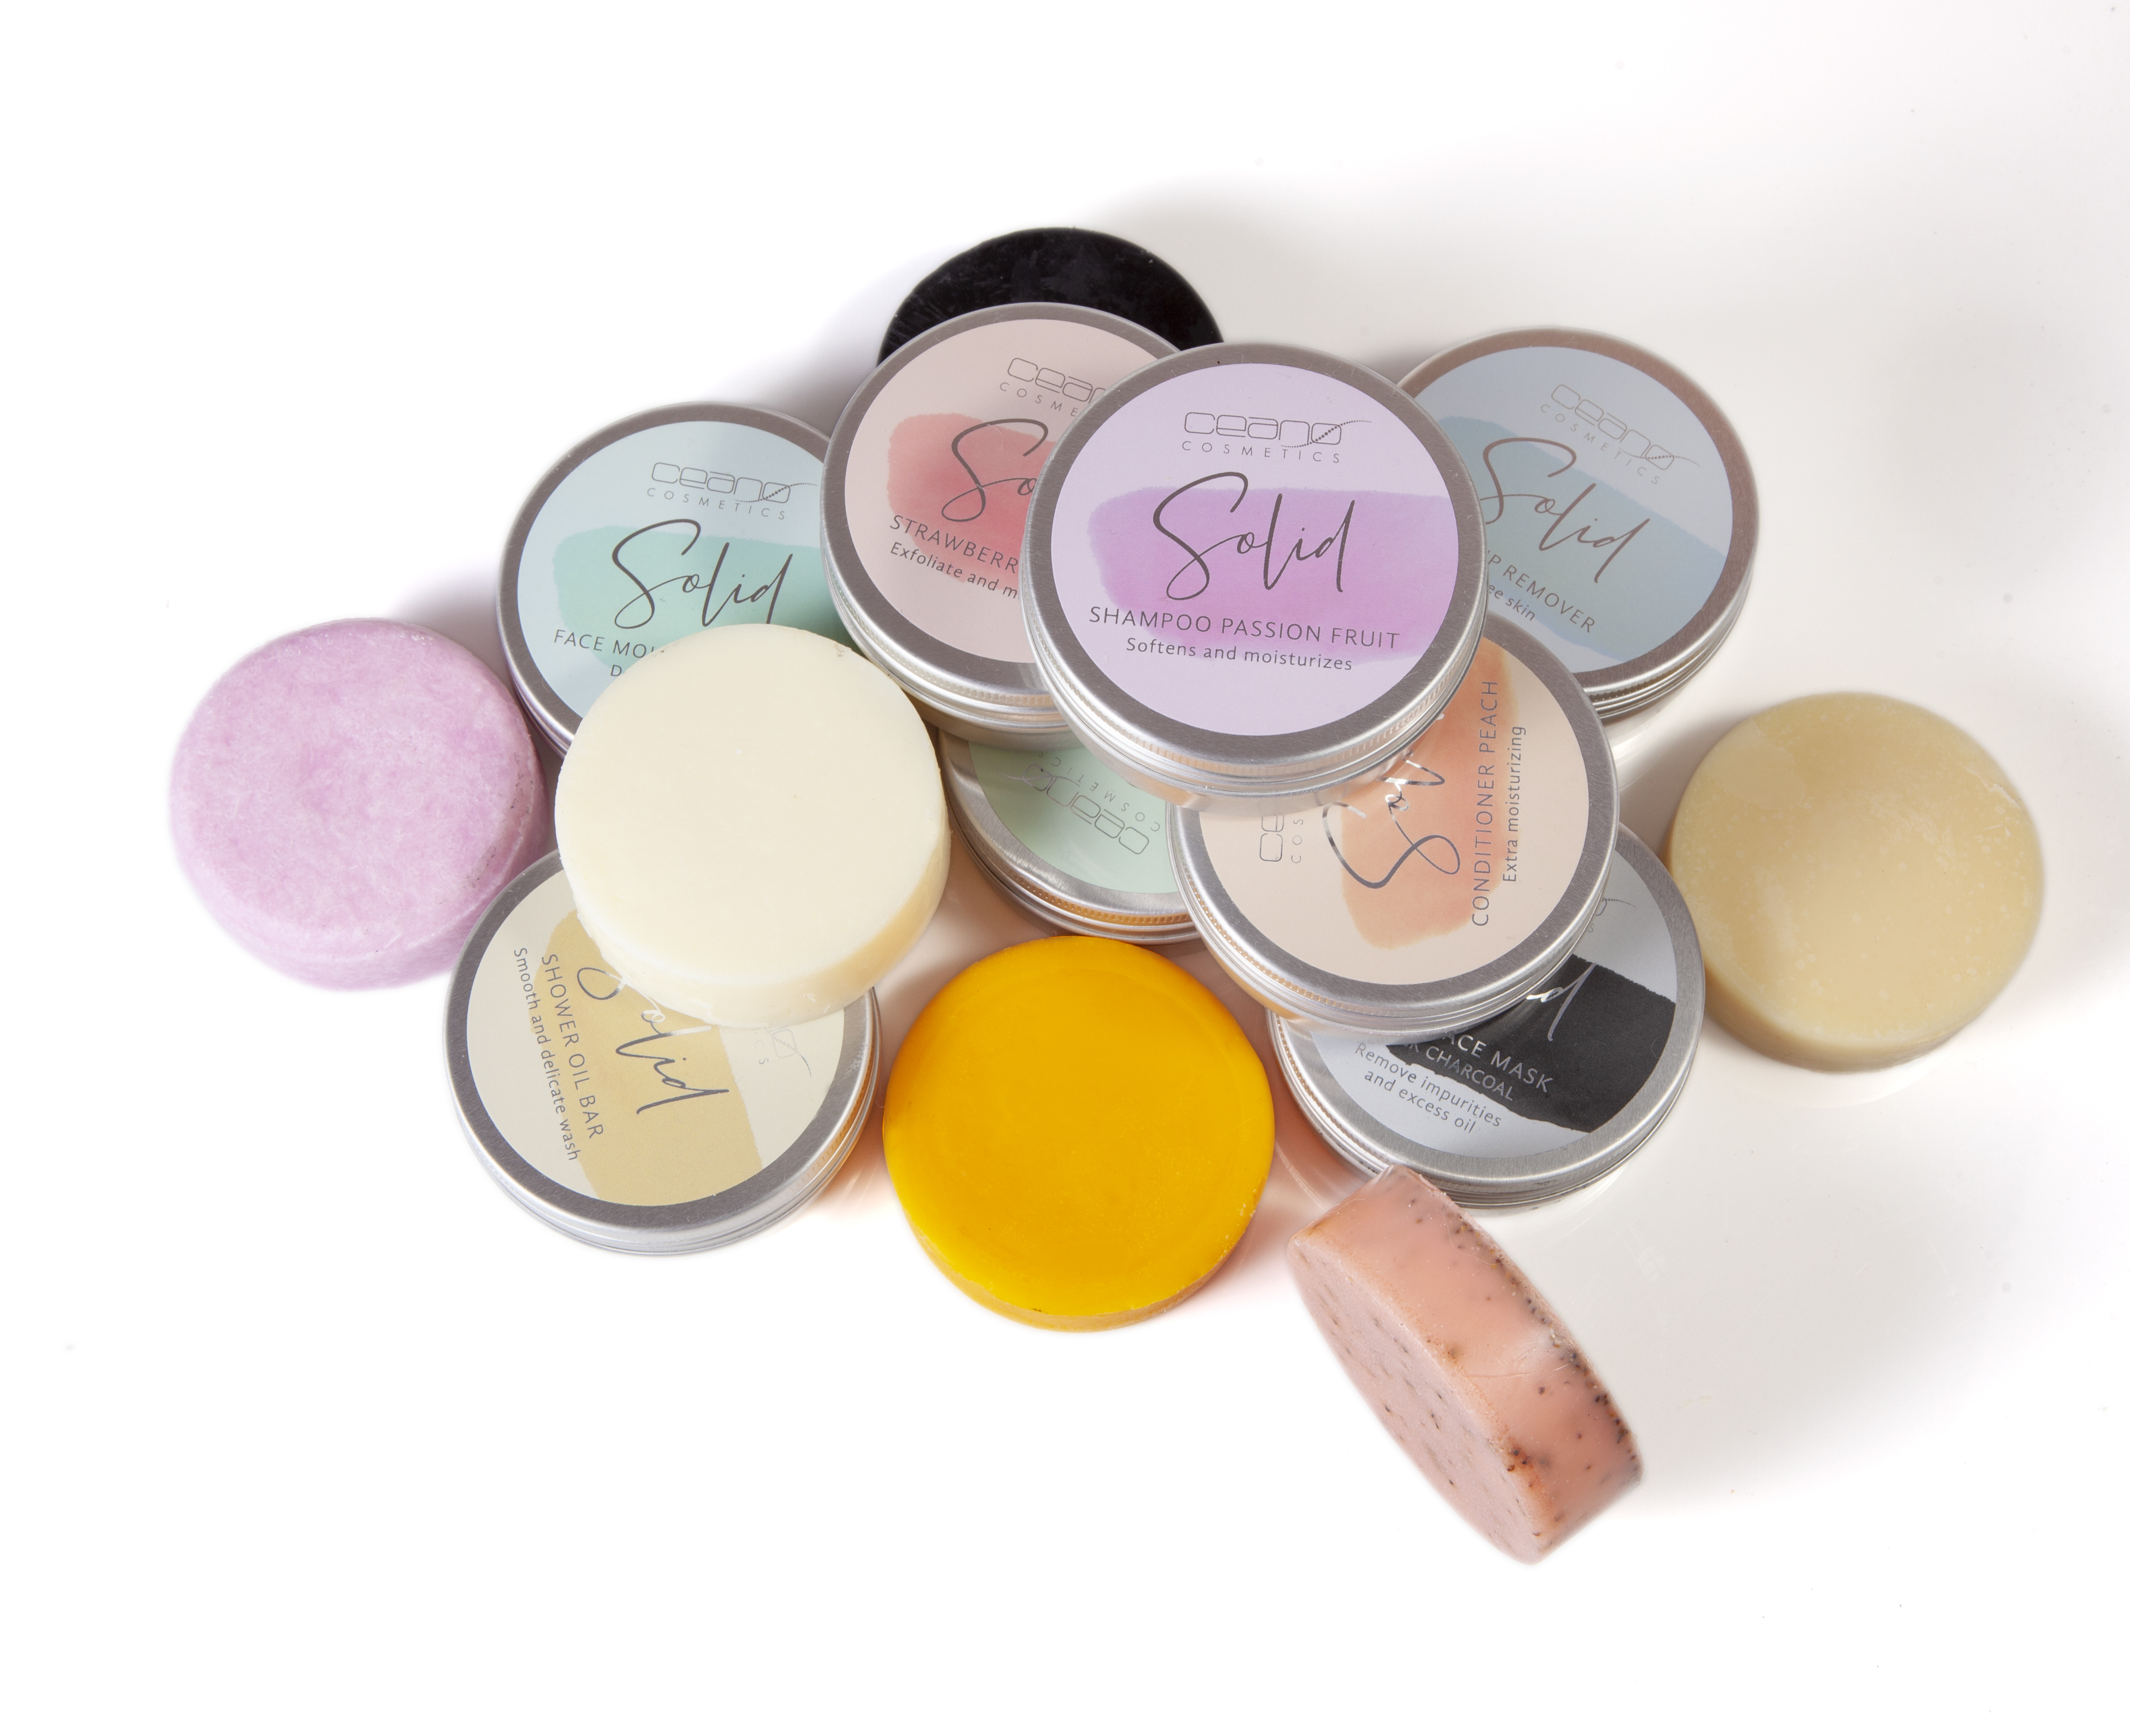 The line of solid cosmetics takes care of you and the whole planet